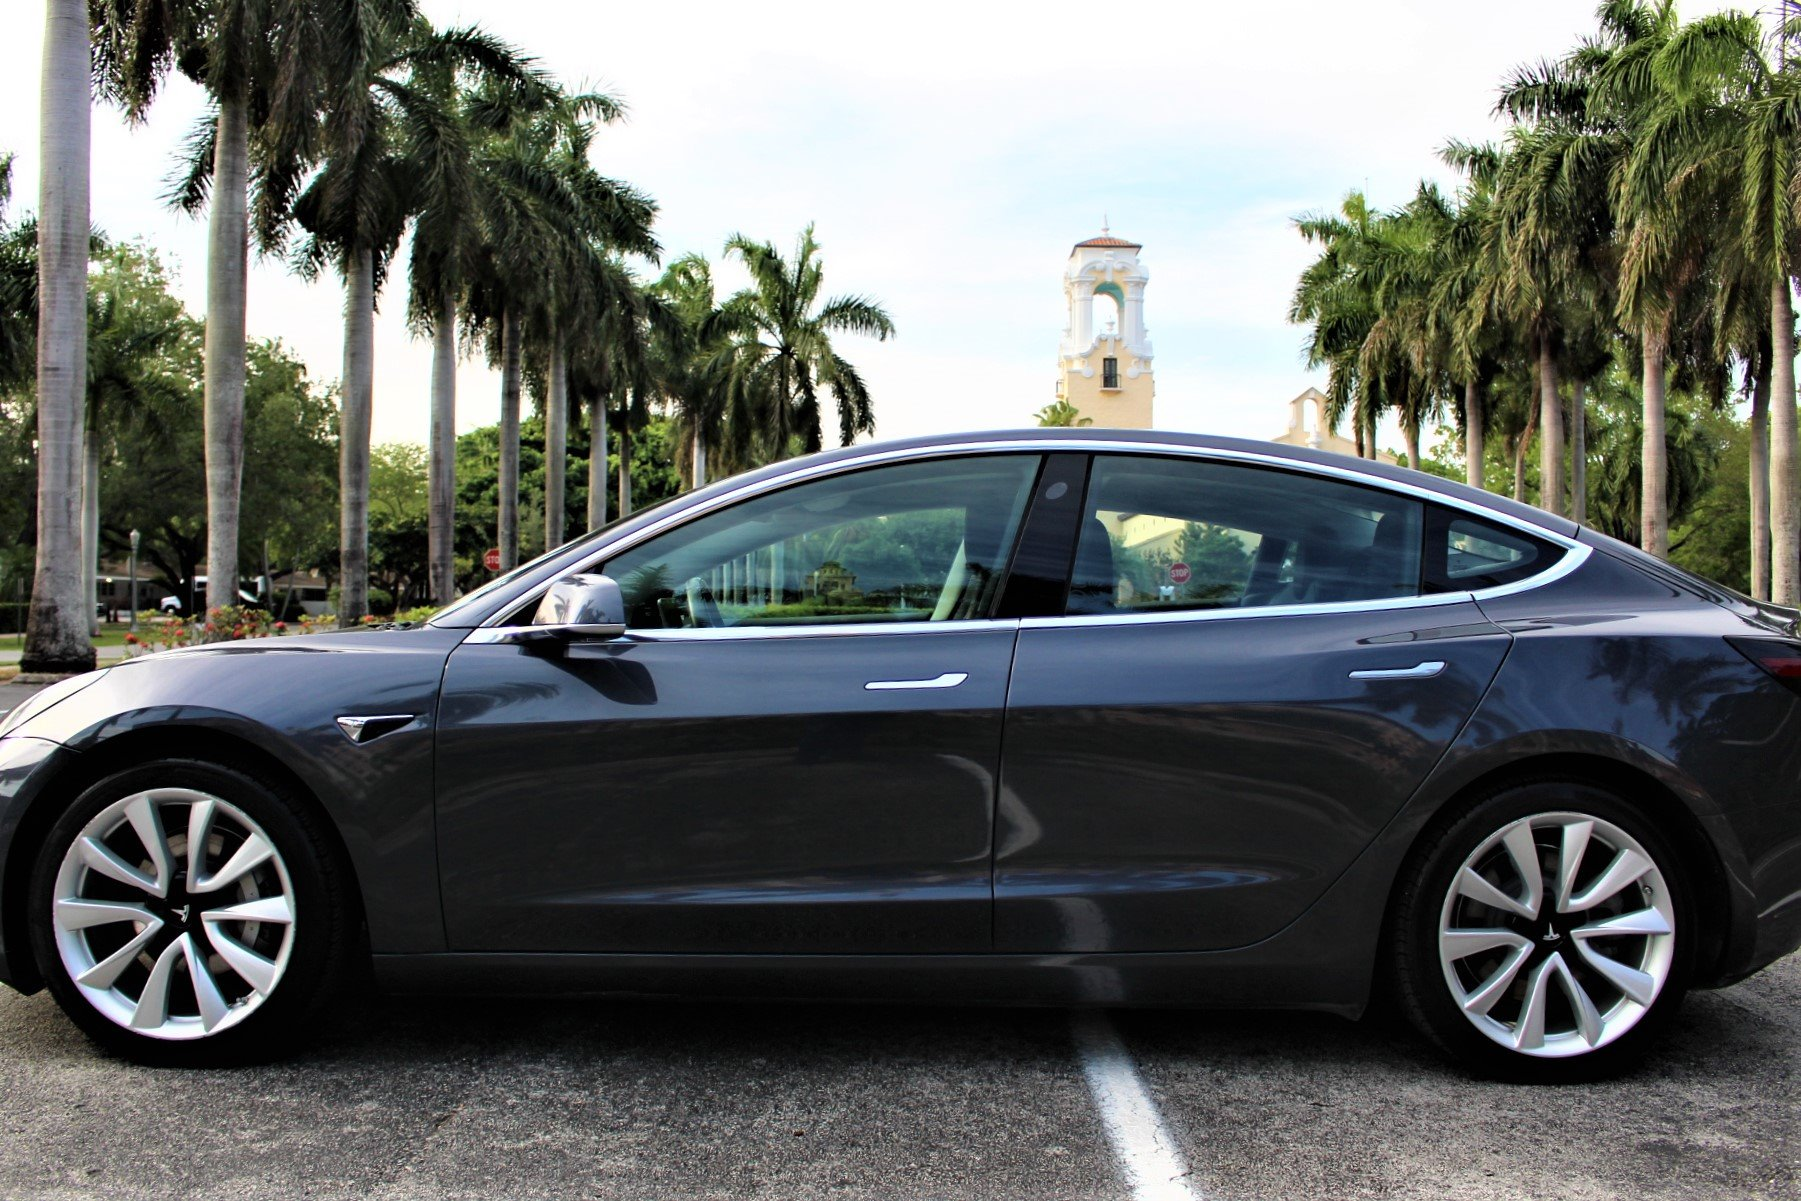 Used 2018 Tesla Model 3 Long Range for sale $37,850 at The Gables Sports Cars in Miami FL 33146 2